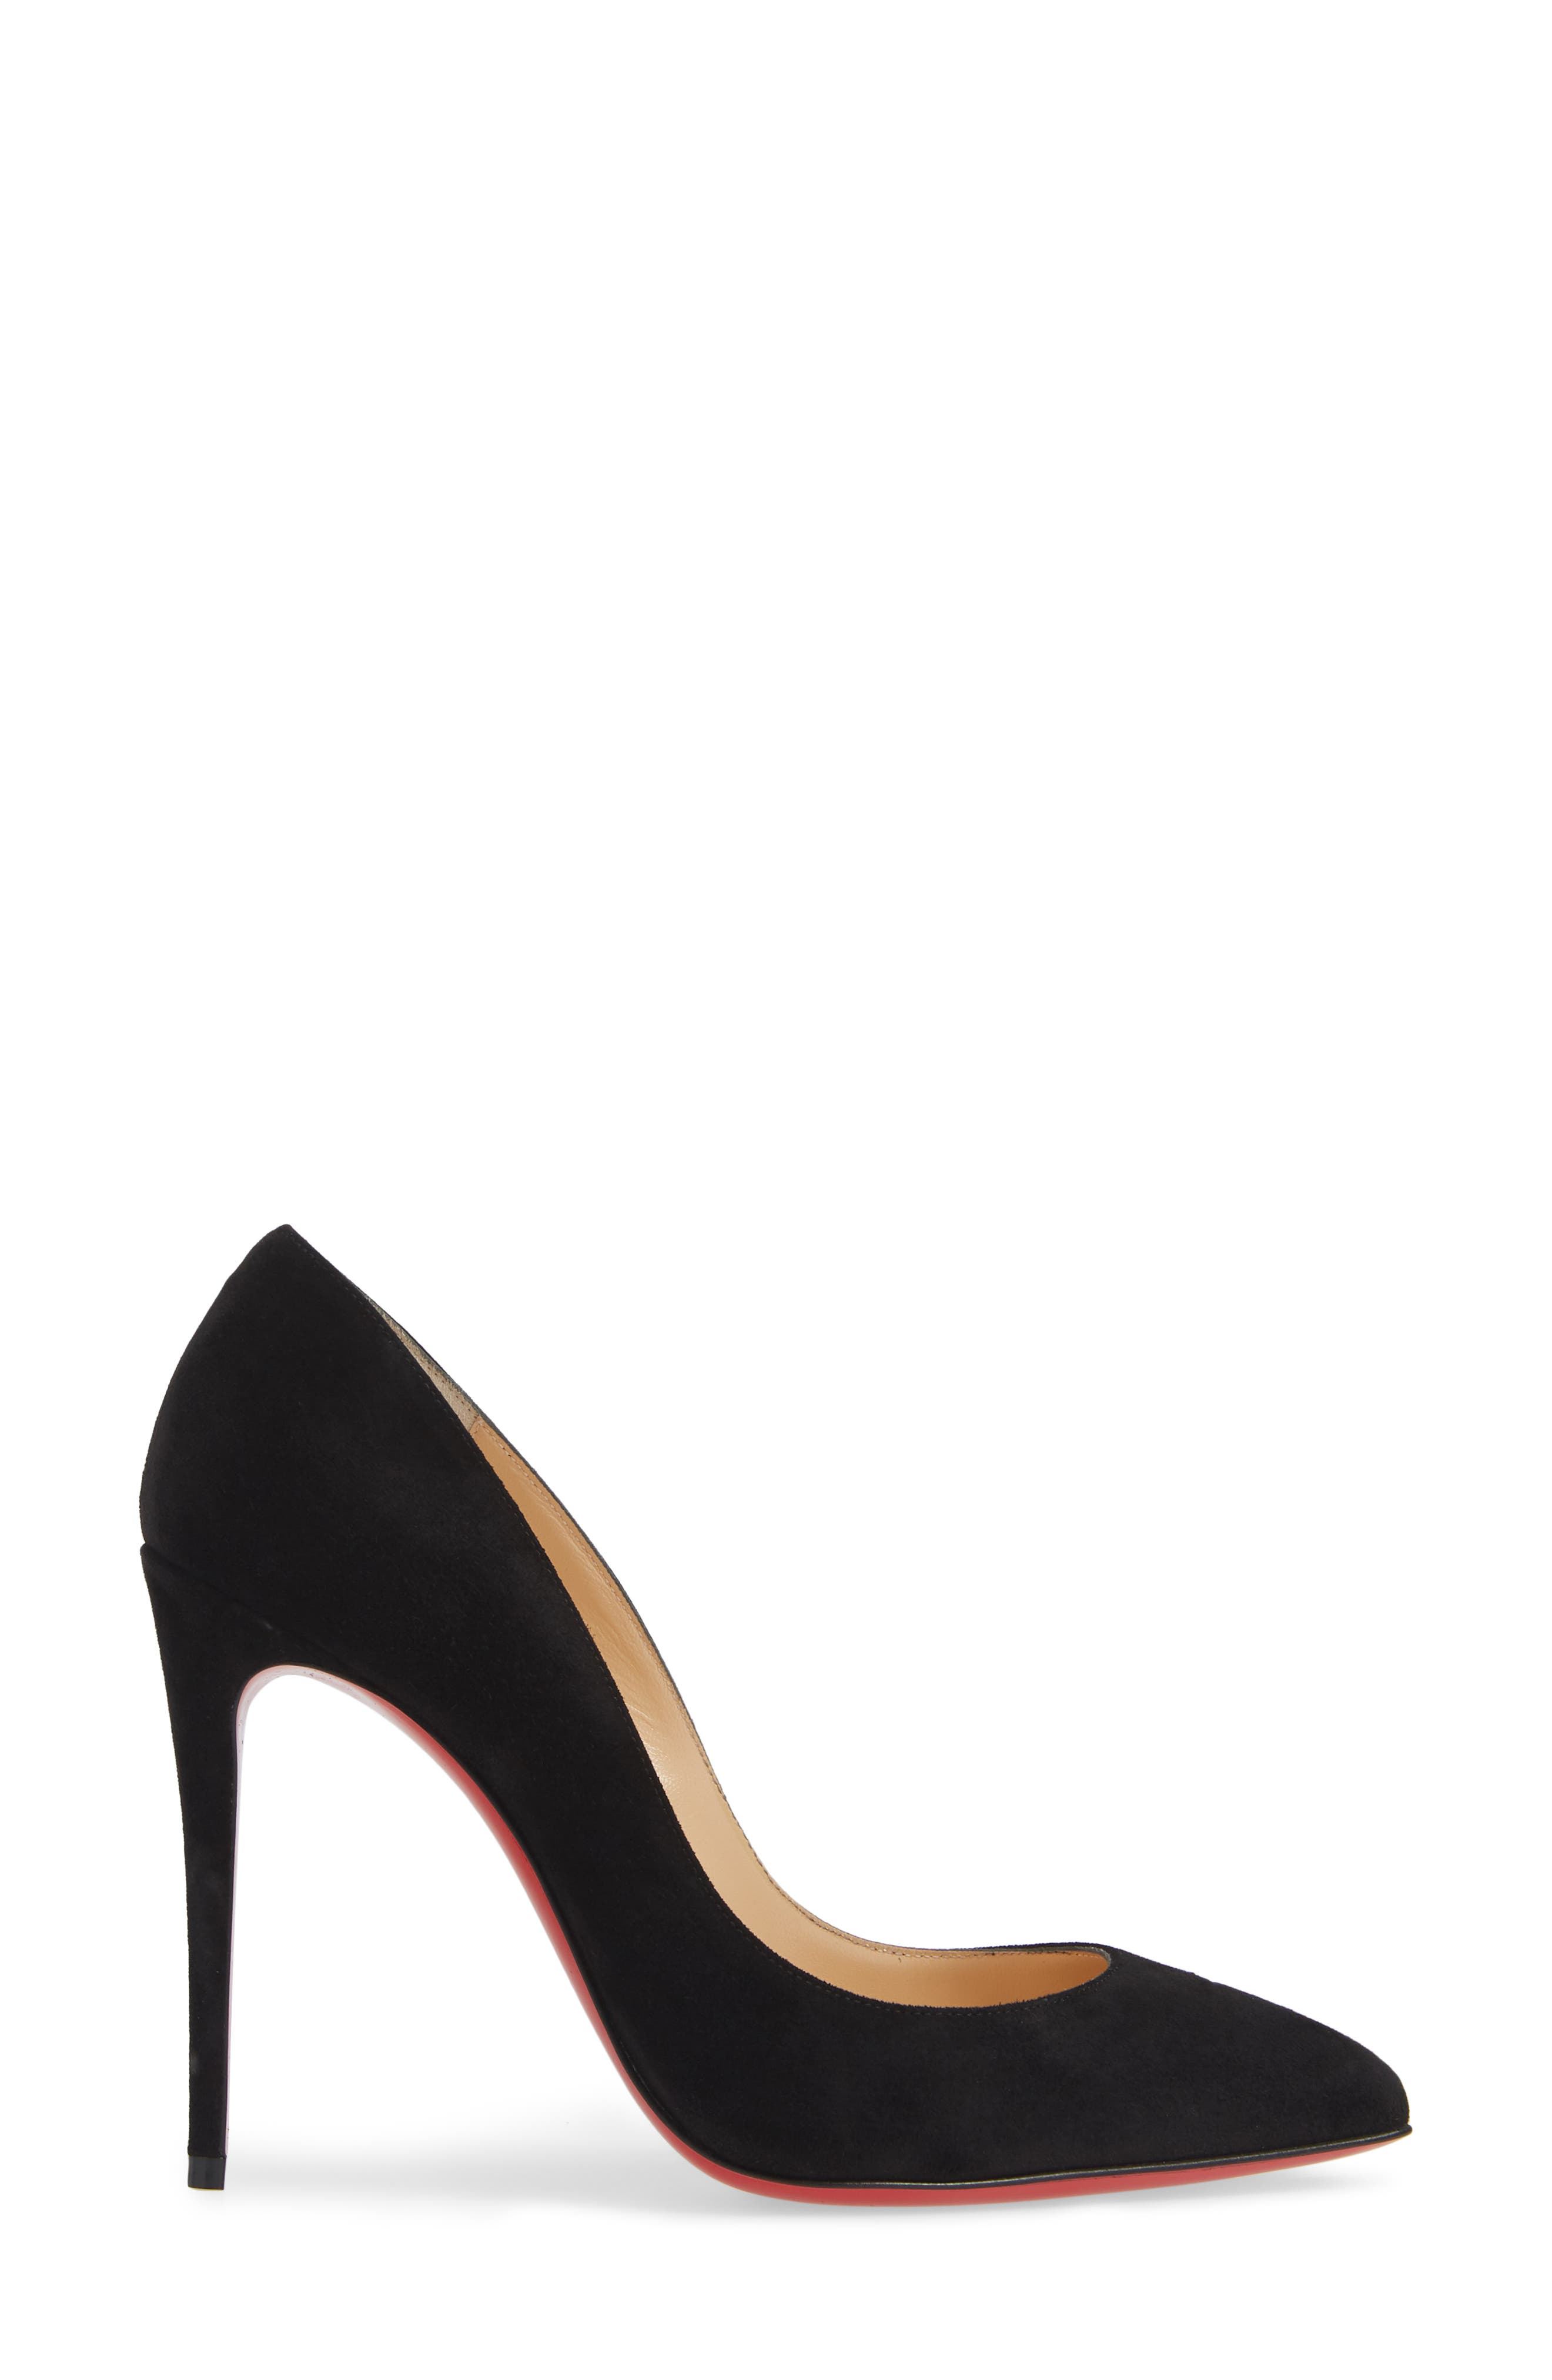 Pigalle Follies Pointy Toe Pump,                             Alternate thumbnail 3, color,                             BLACK SUEDE